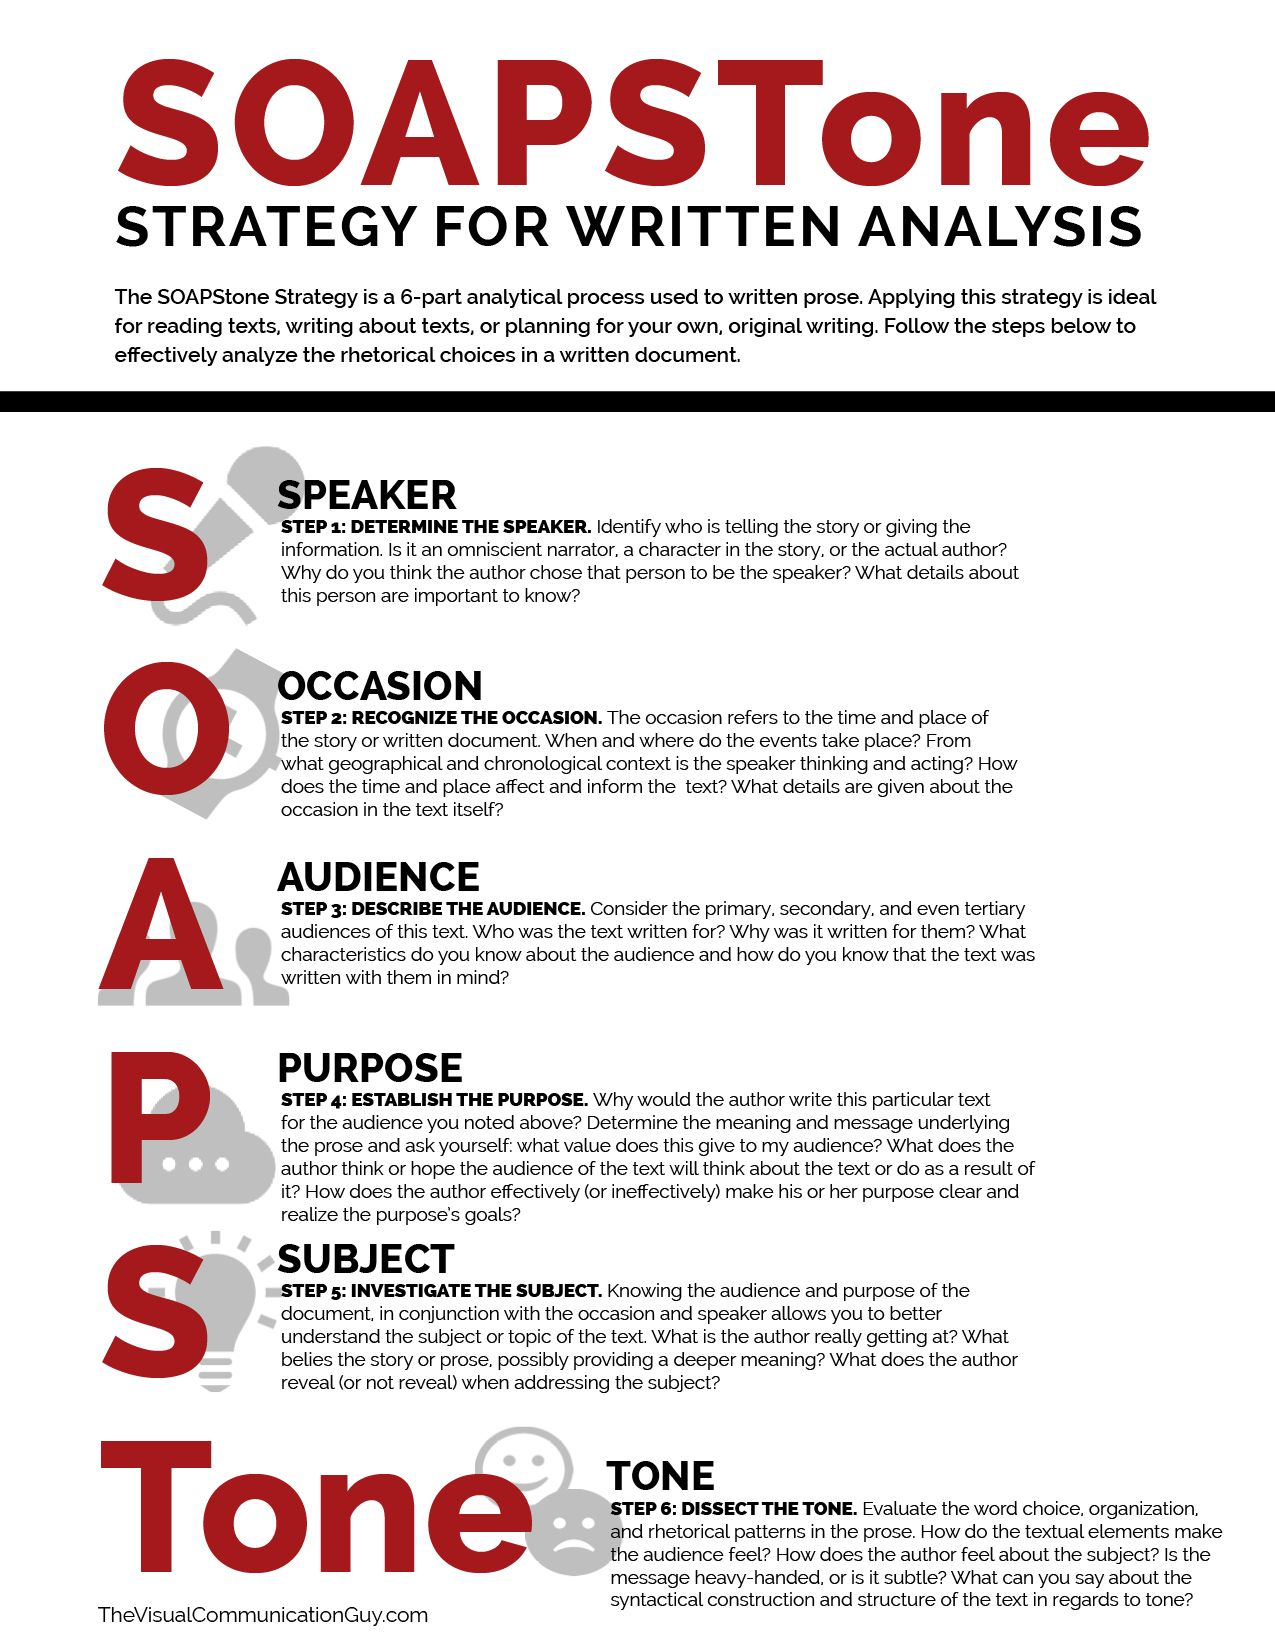 Soapstone Strategy For Written Analysis The Visual Communication